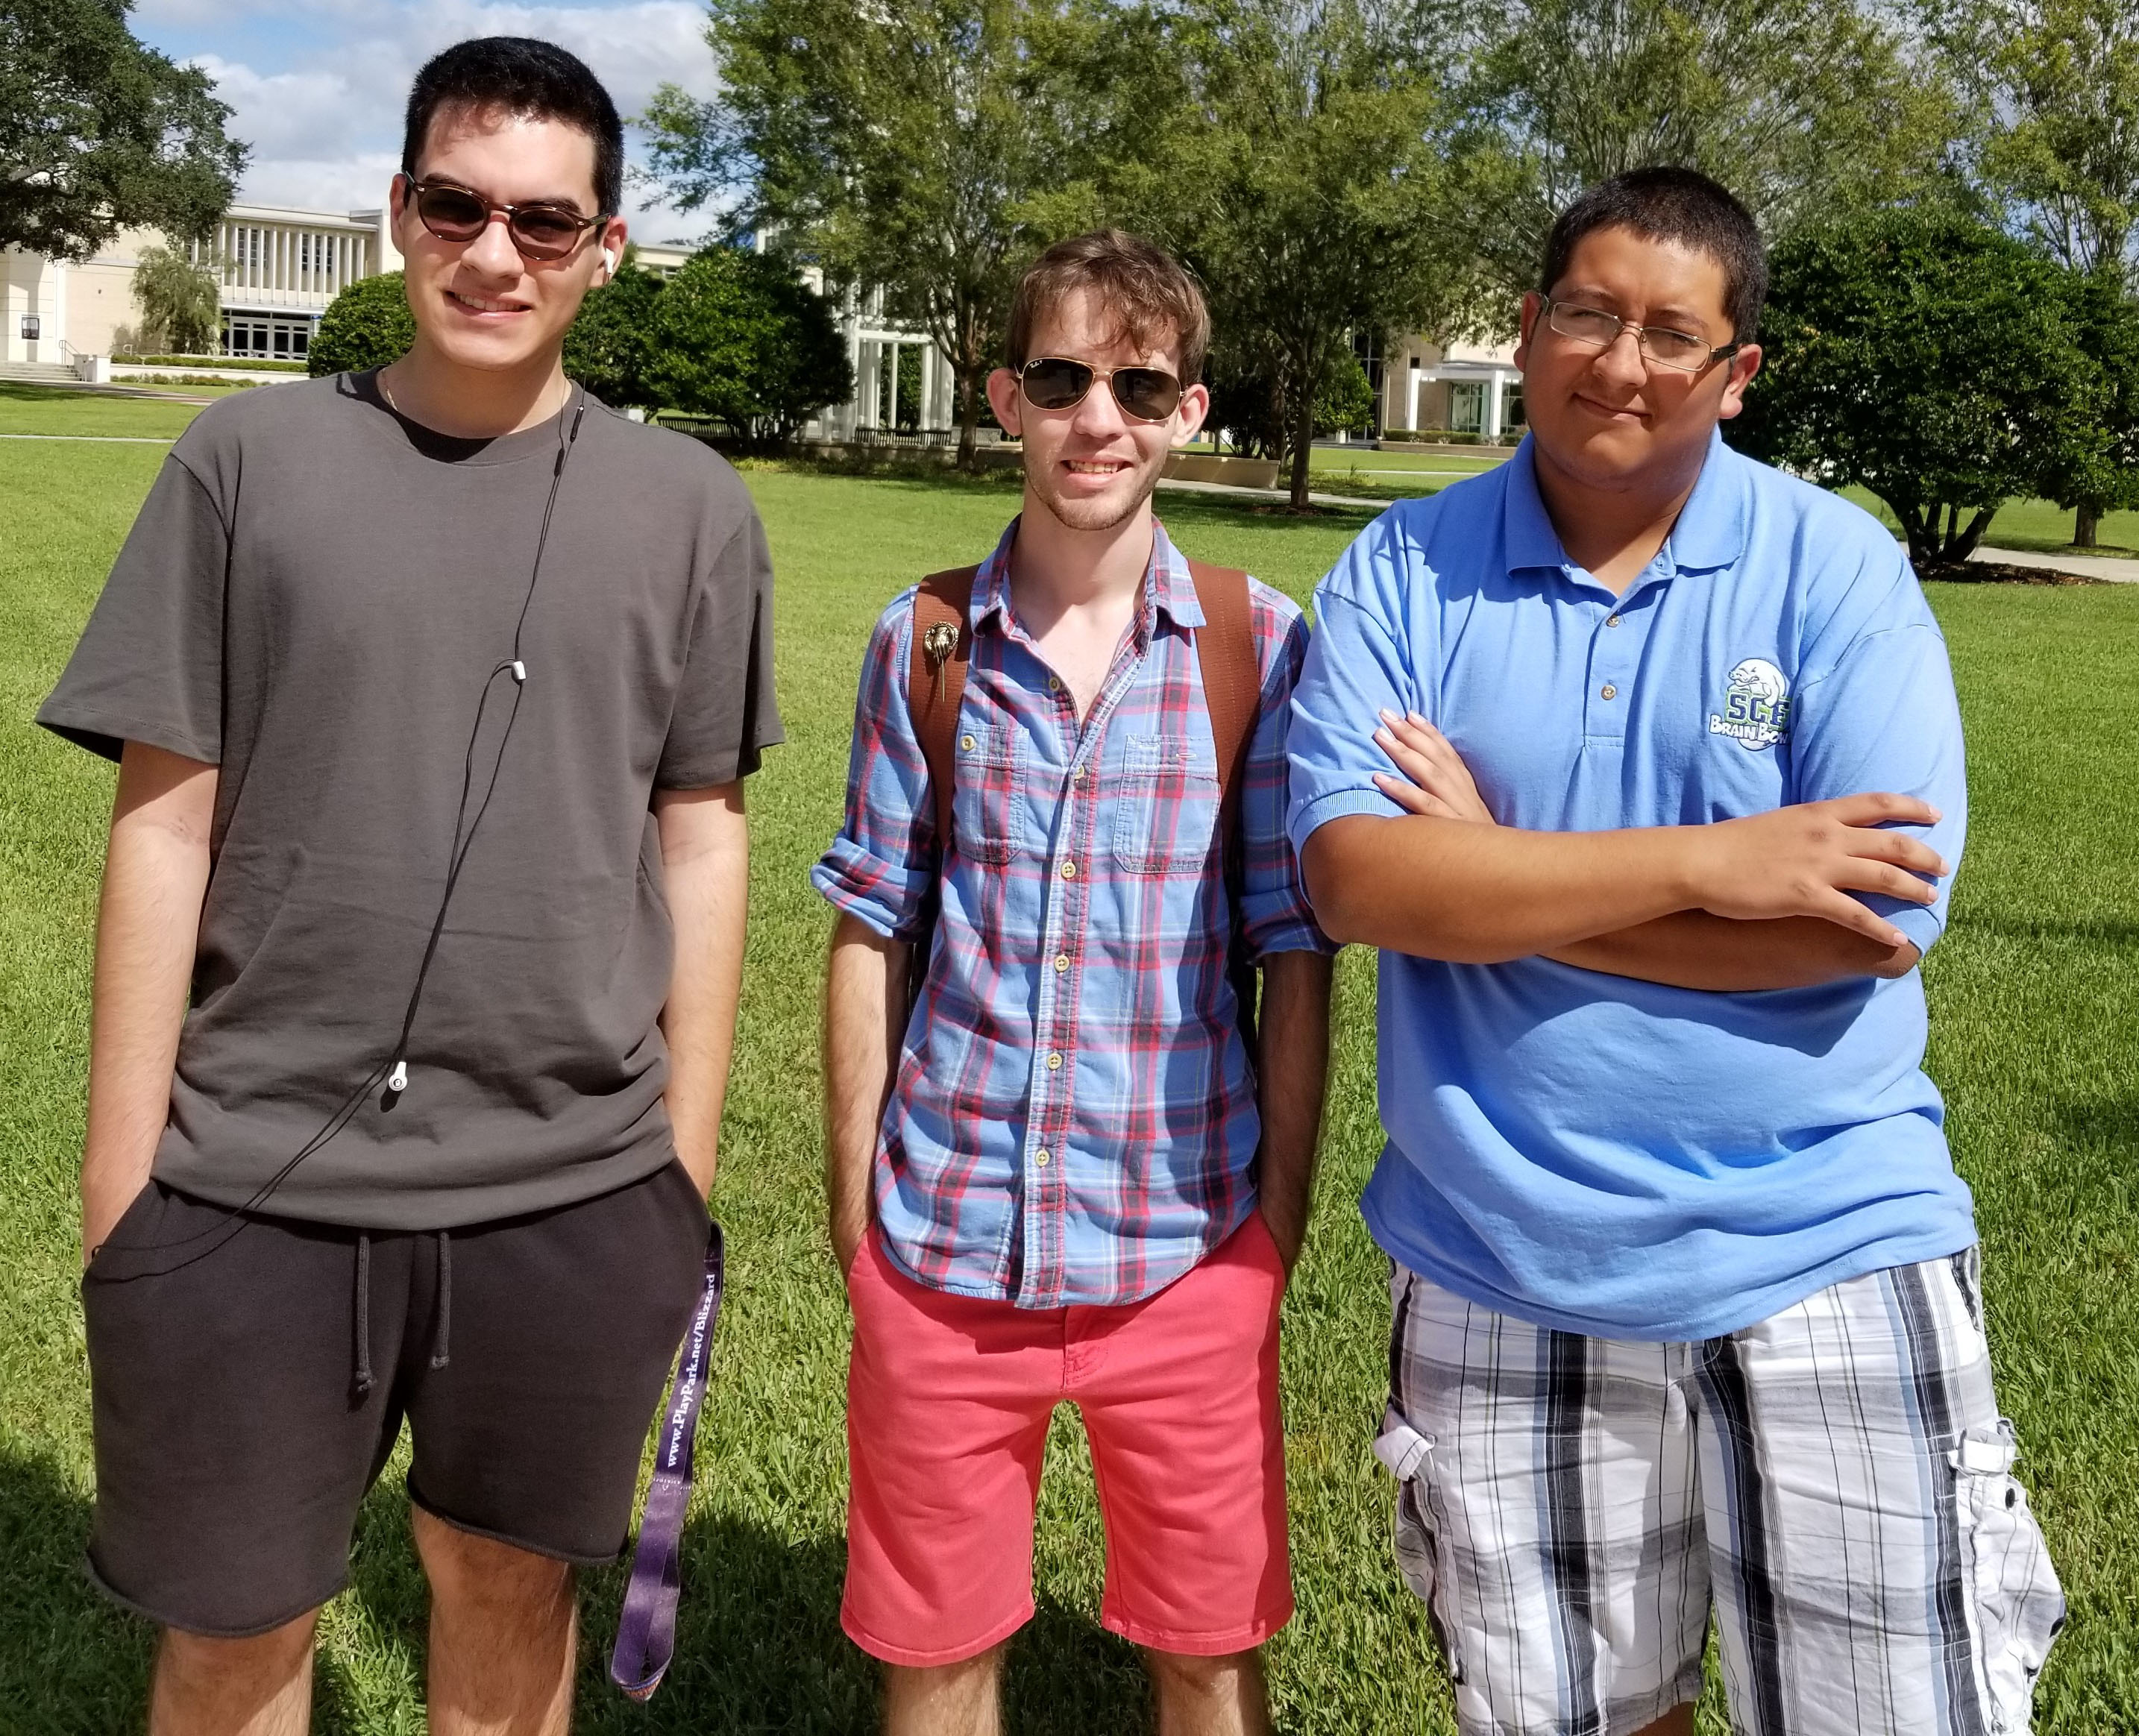 From left: Ariel Rodriguez, Austin Goode, team captain, and David Espinal